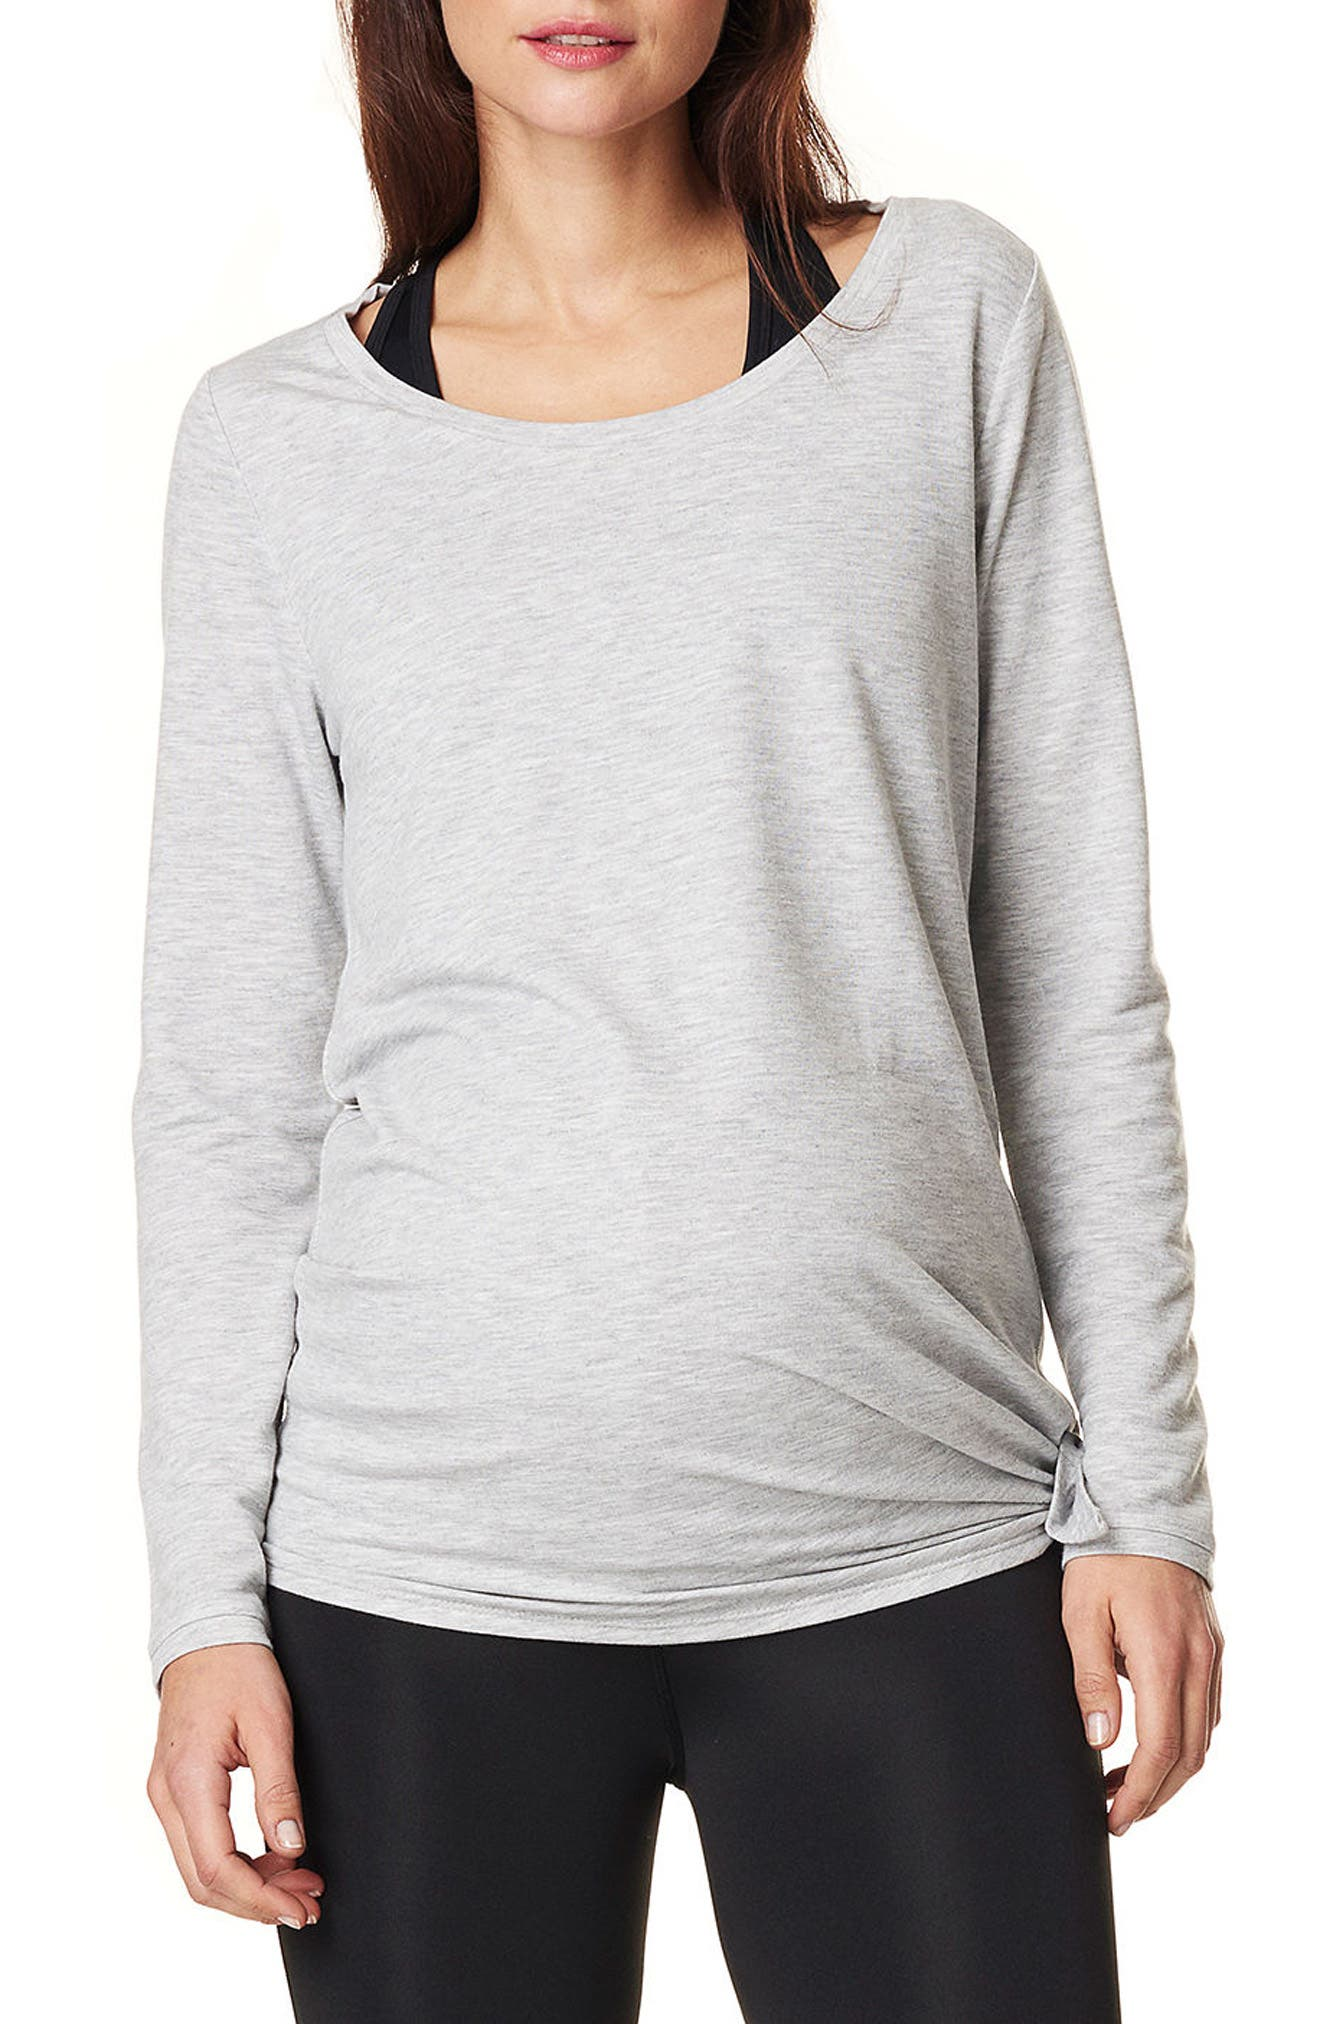 Heather Athletic Maternity Top,                             Main thumbnail 1, color,                             GREY MELANGE